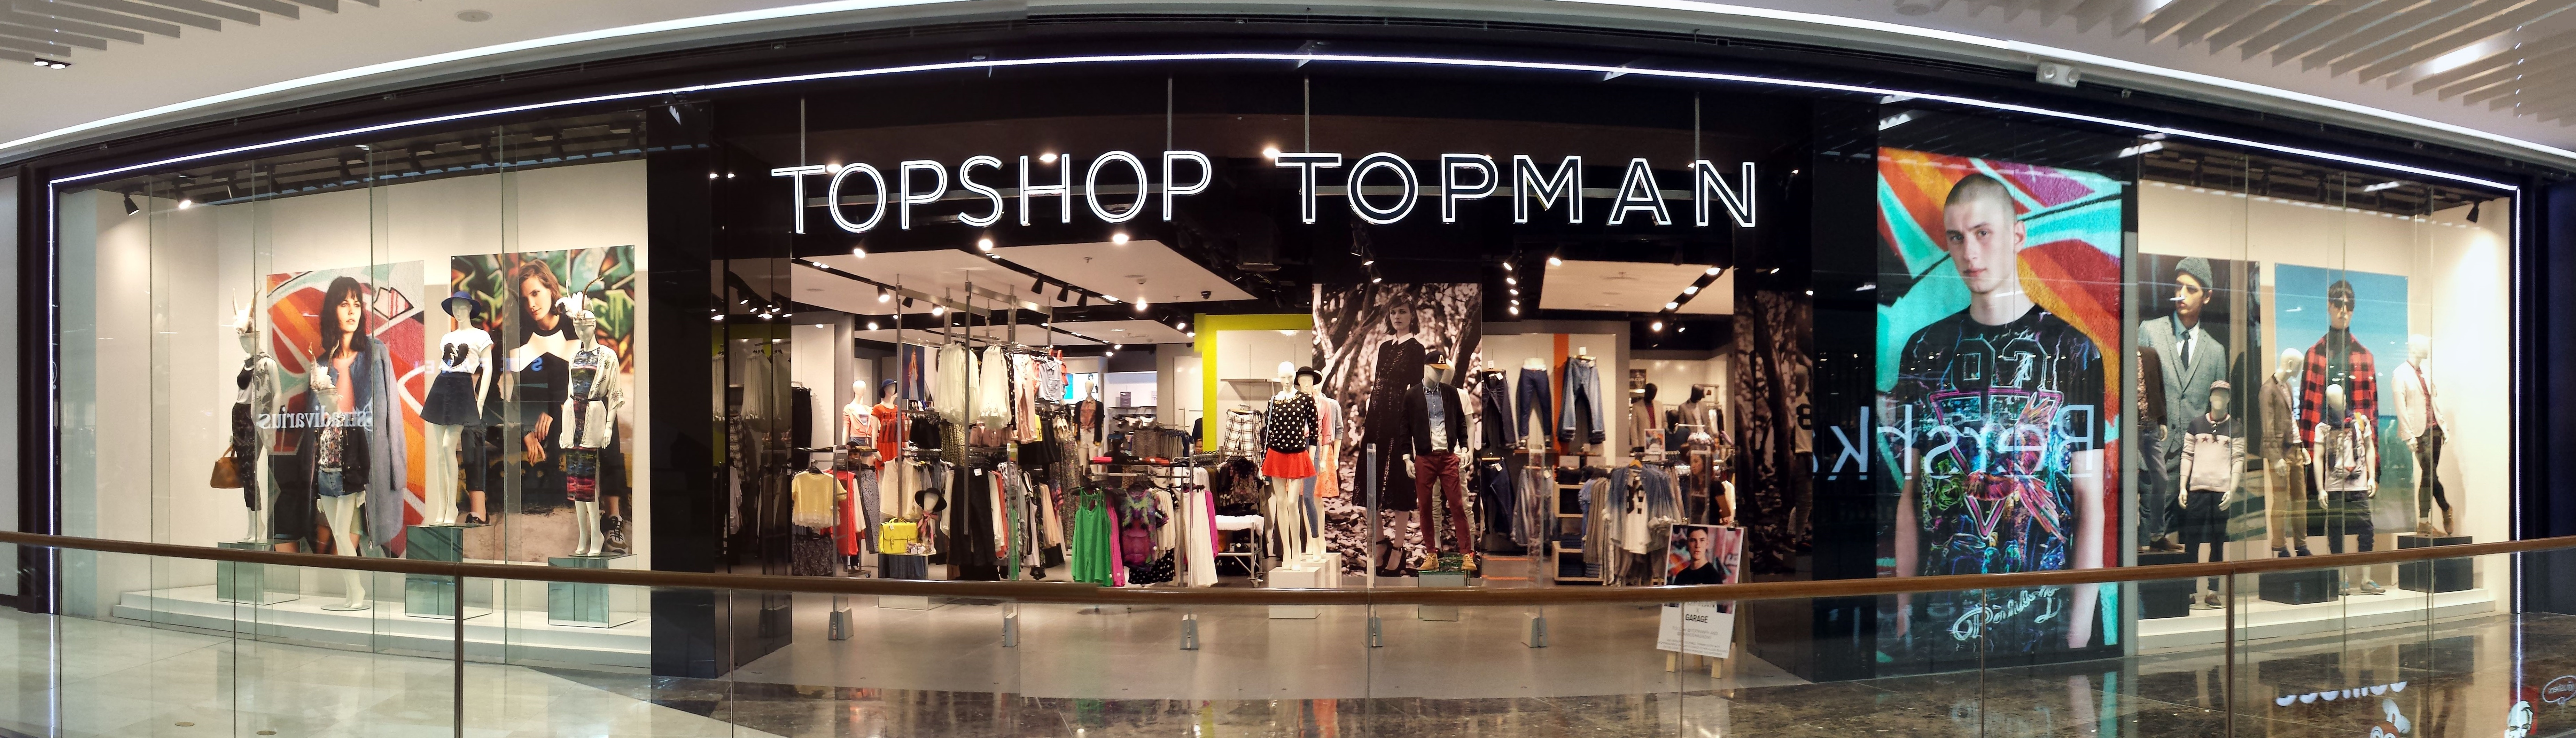 topshop background For mens fashion check out the latest ranges at topman online and buy today topman - the only destination for the best in mens fashion.